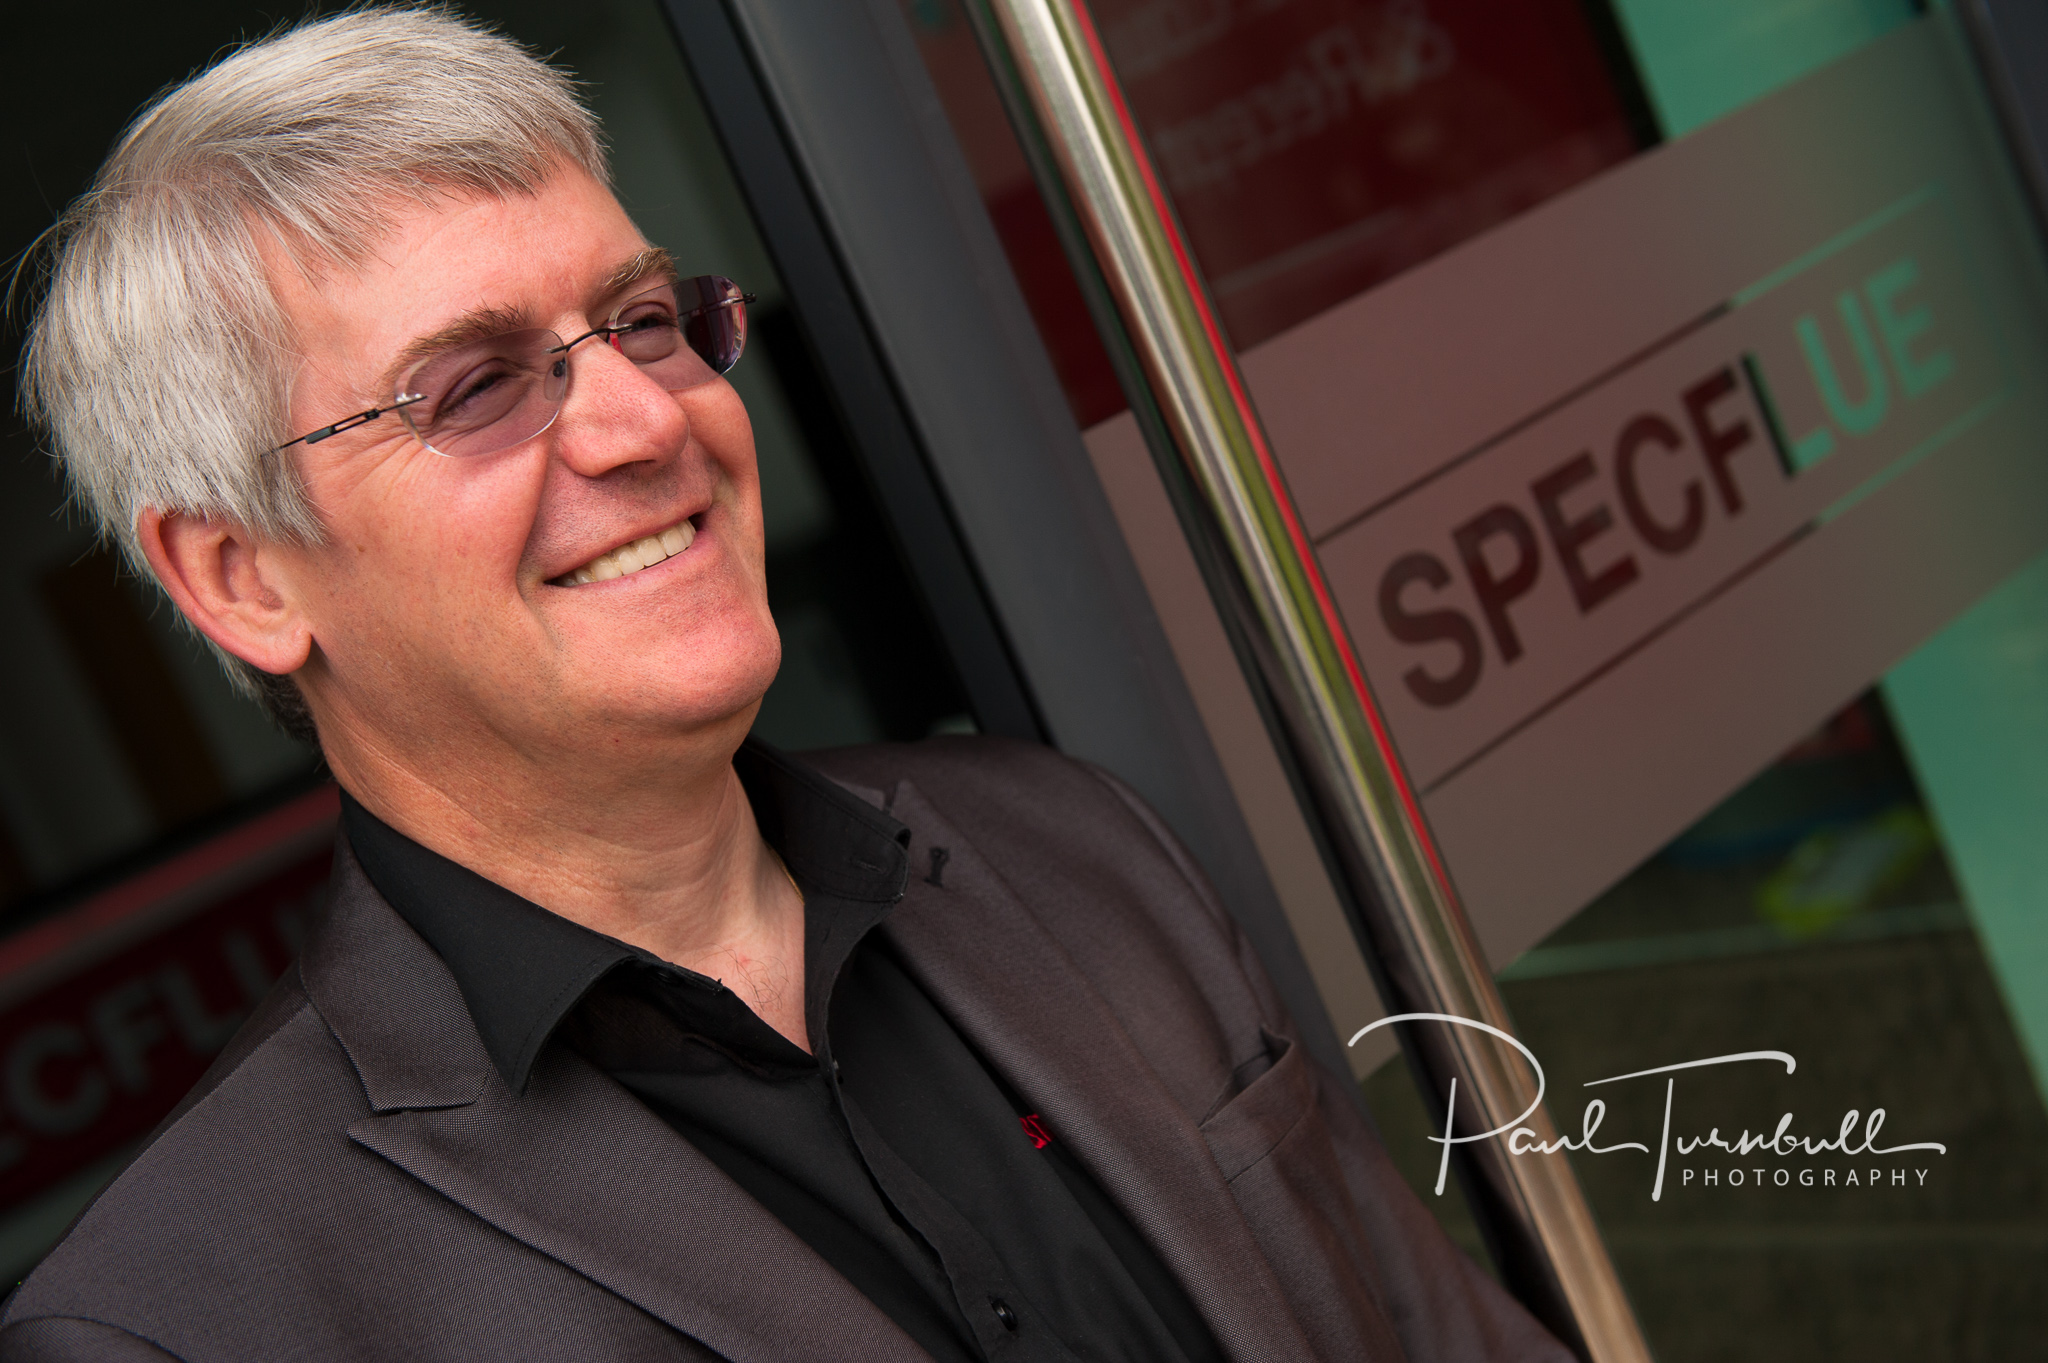 commercial-pr-photographer-leeds-yorkshire-specflue-008.jpg